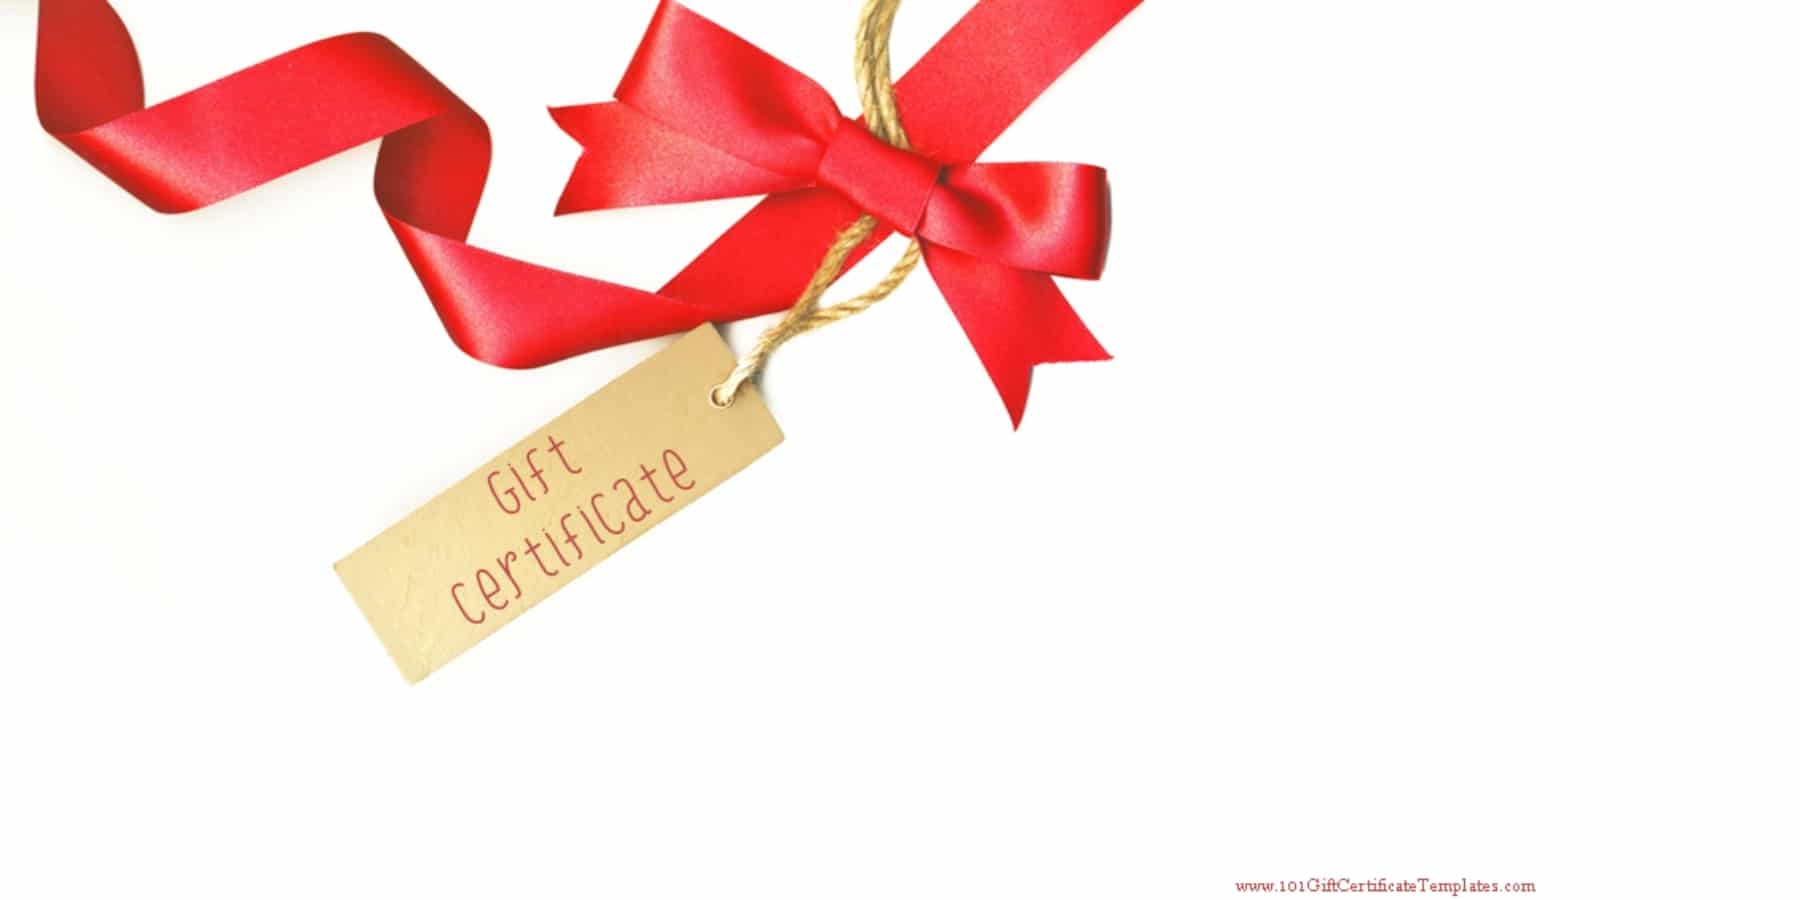 Printable gift certificate templates gift card which can be customized in any way with our gift card maker xflitez Images